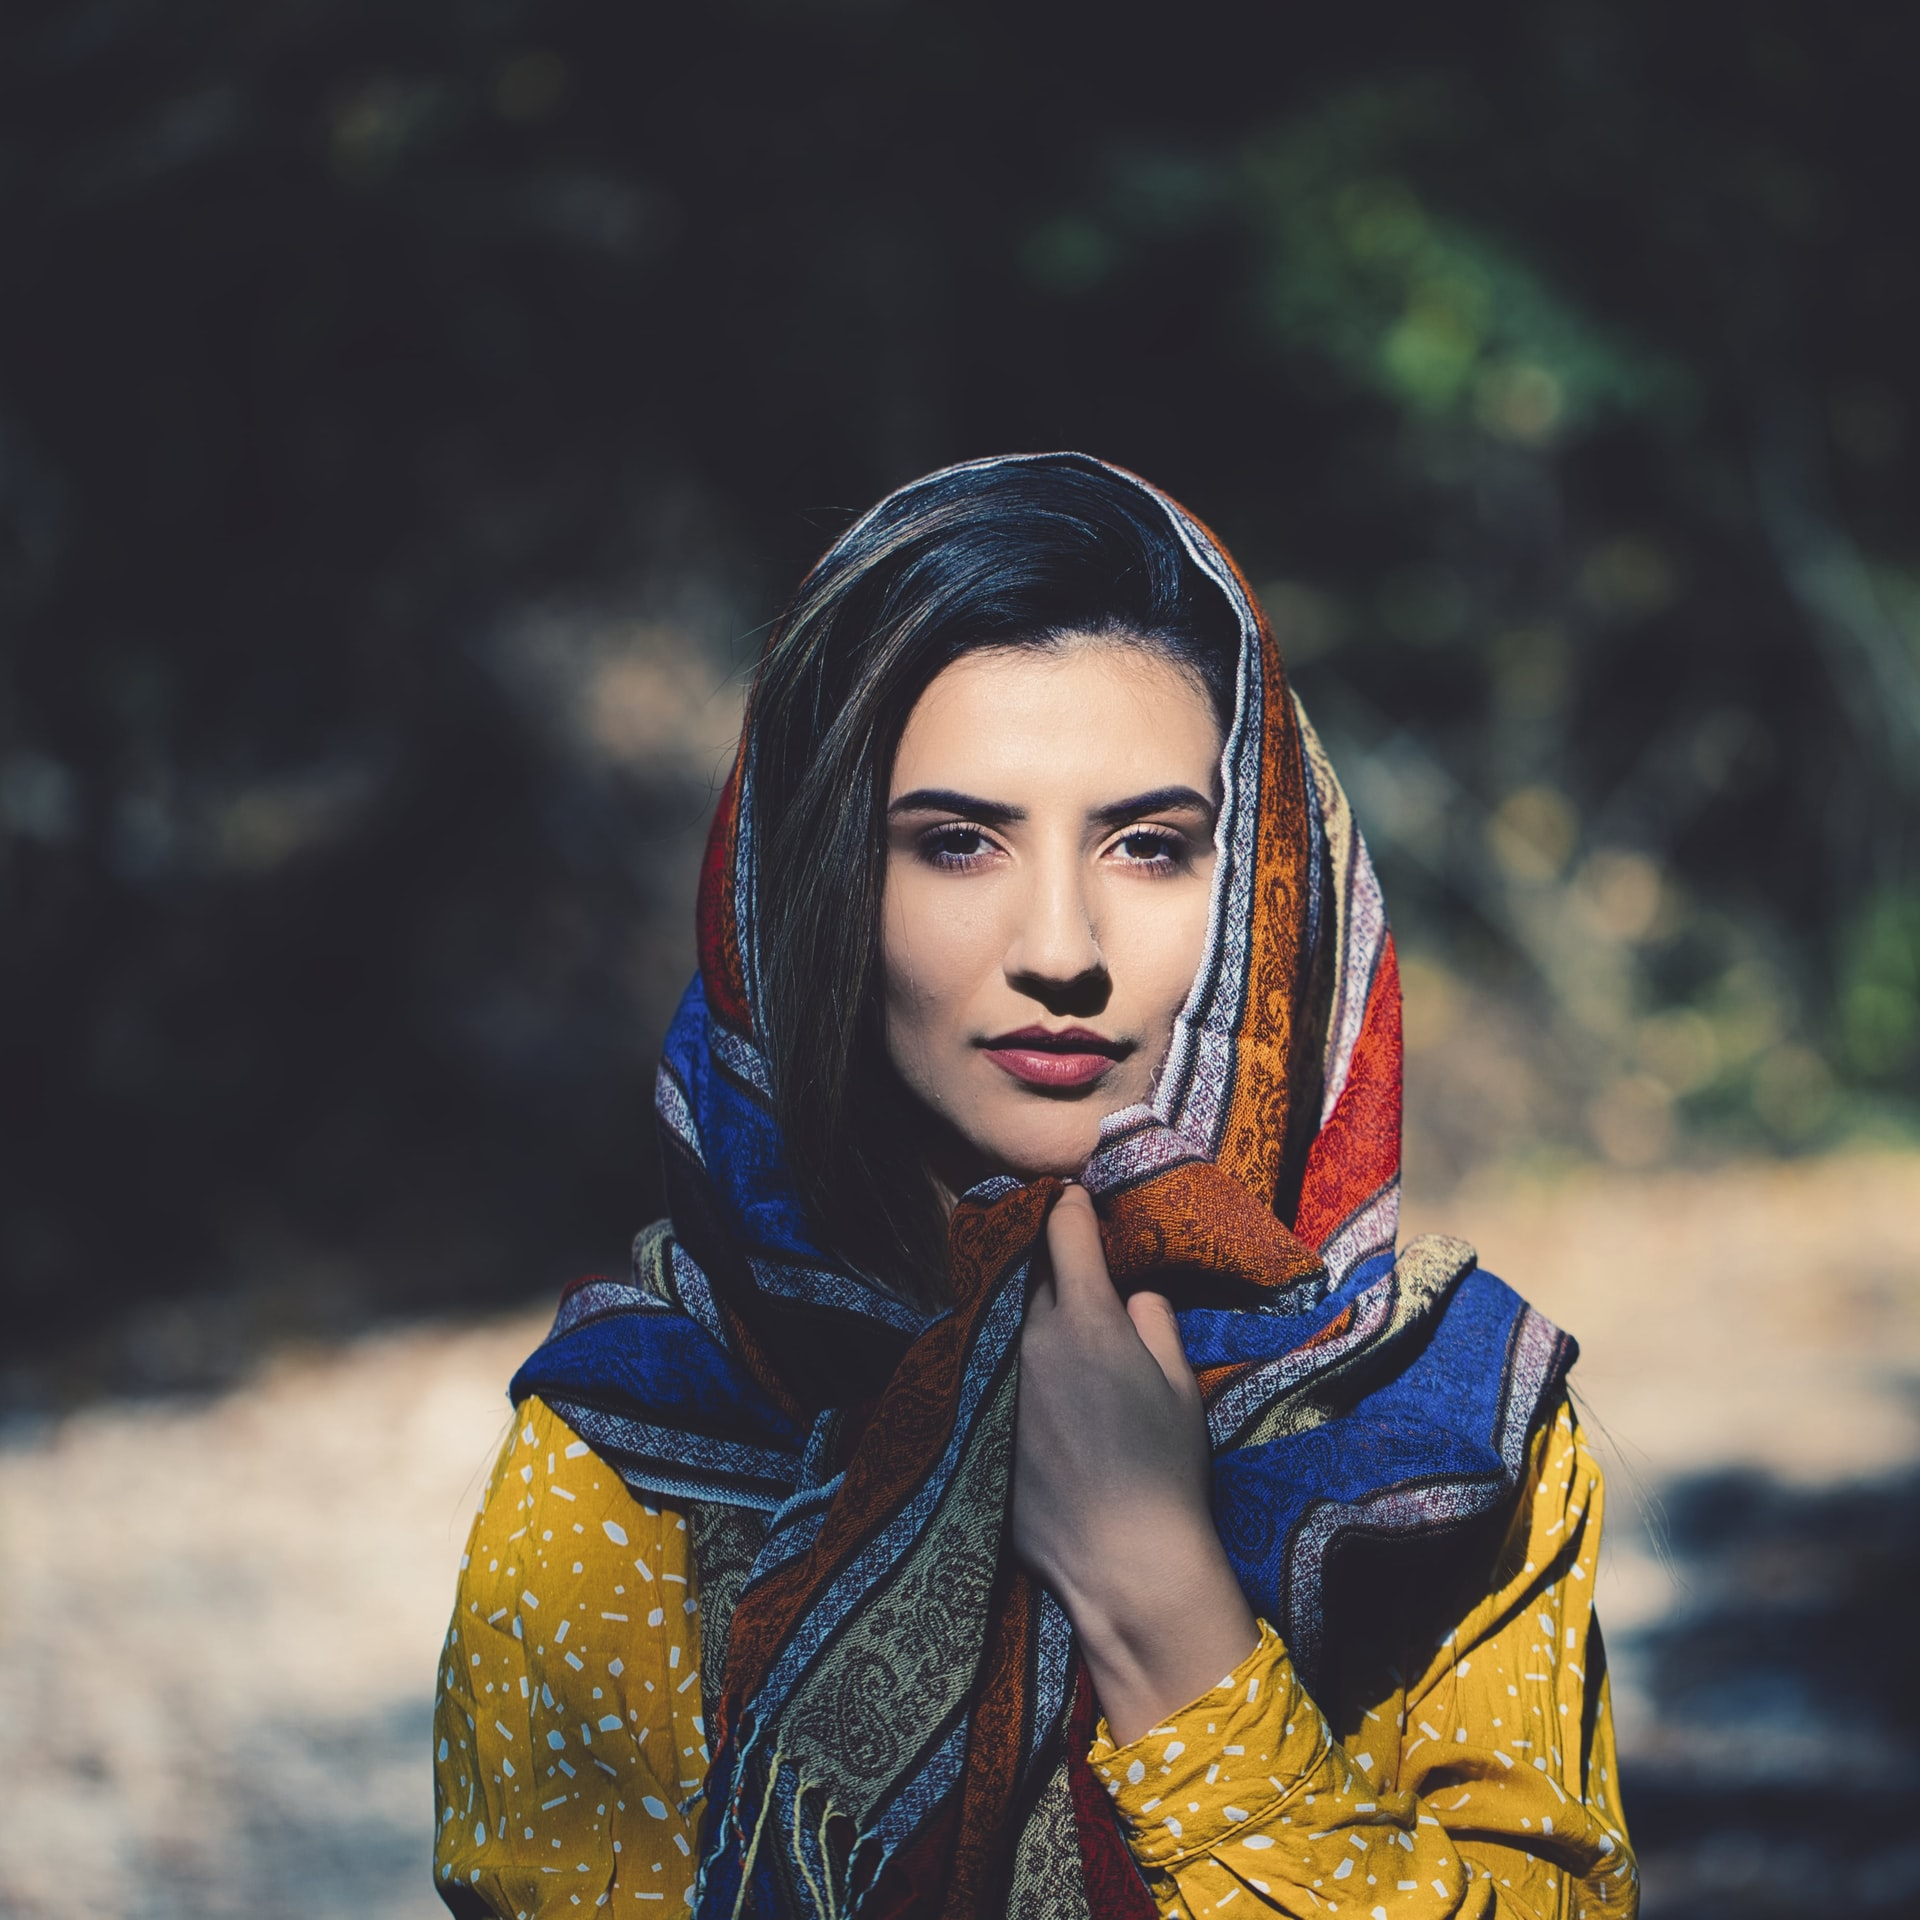 Most beautiful face in an elegant scarf and overall clothes